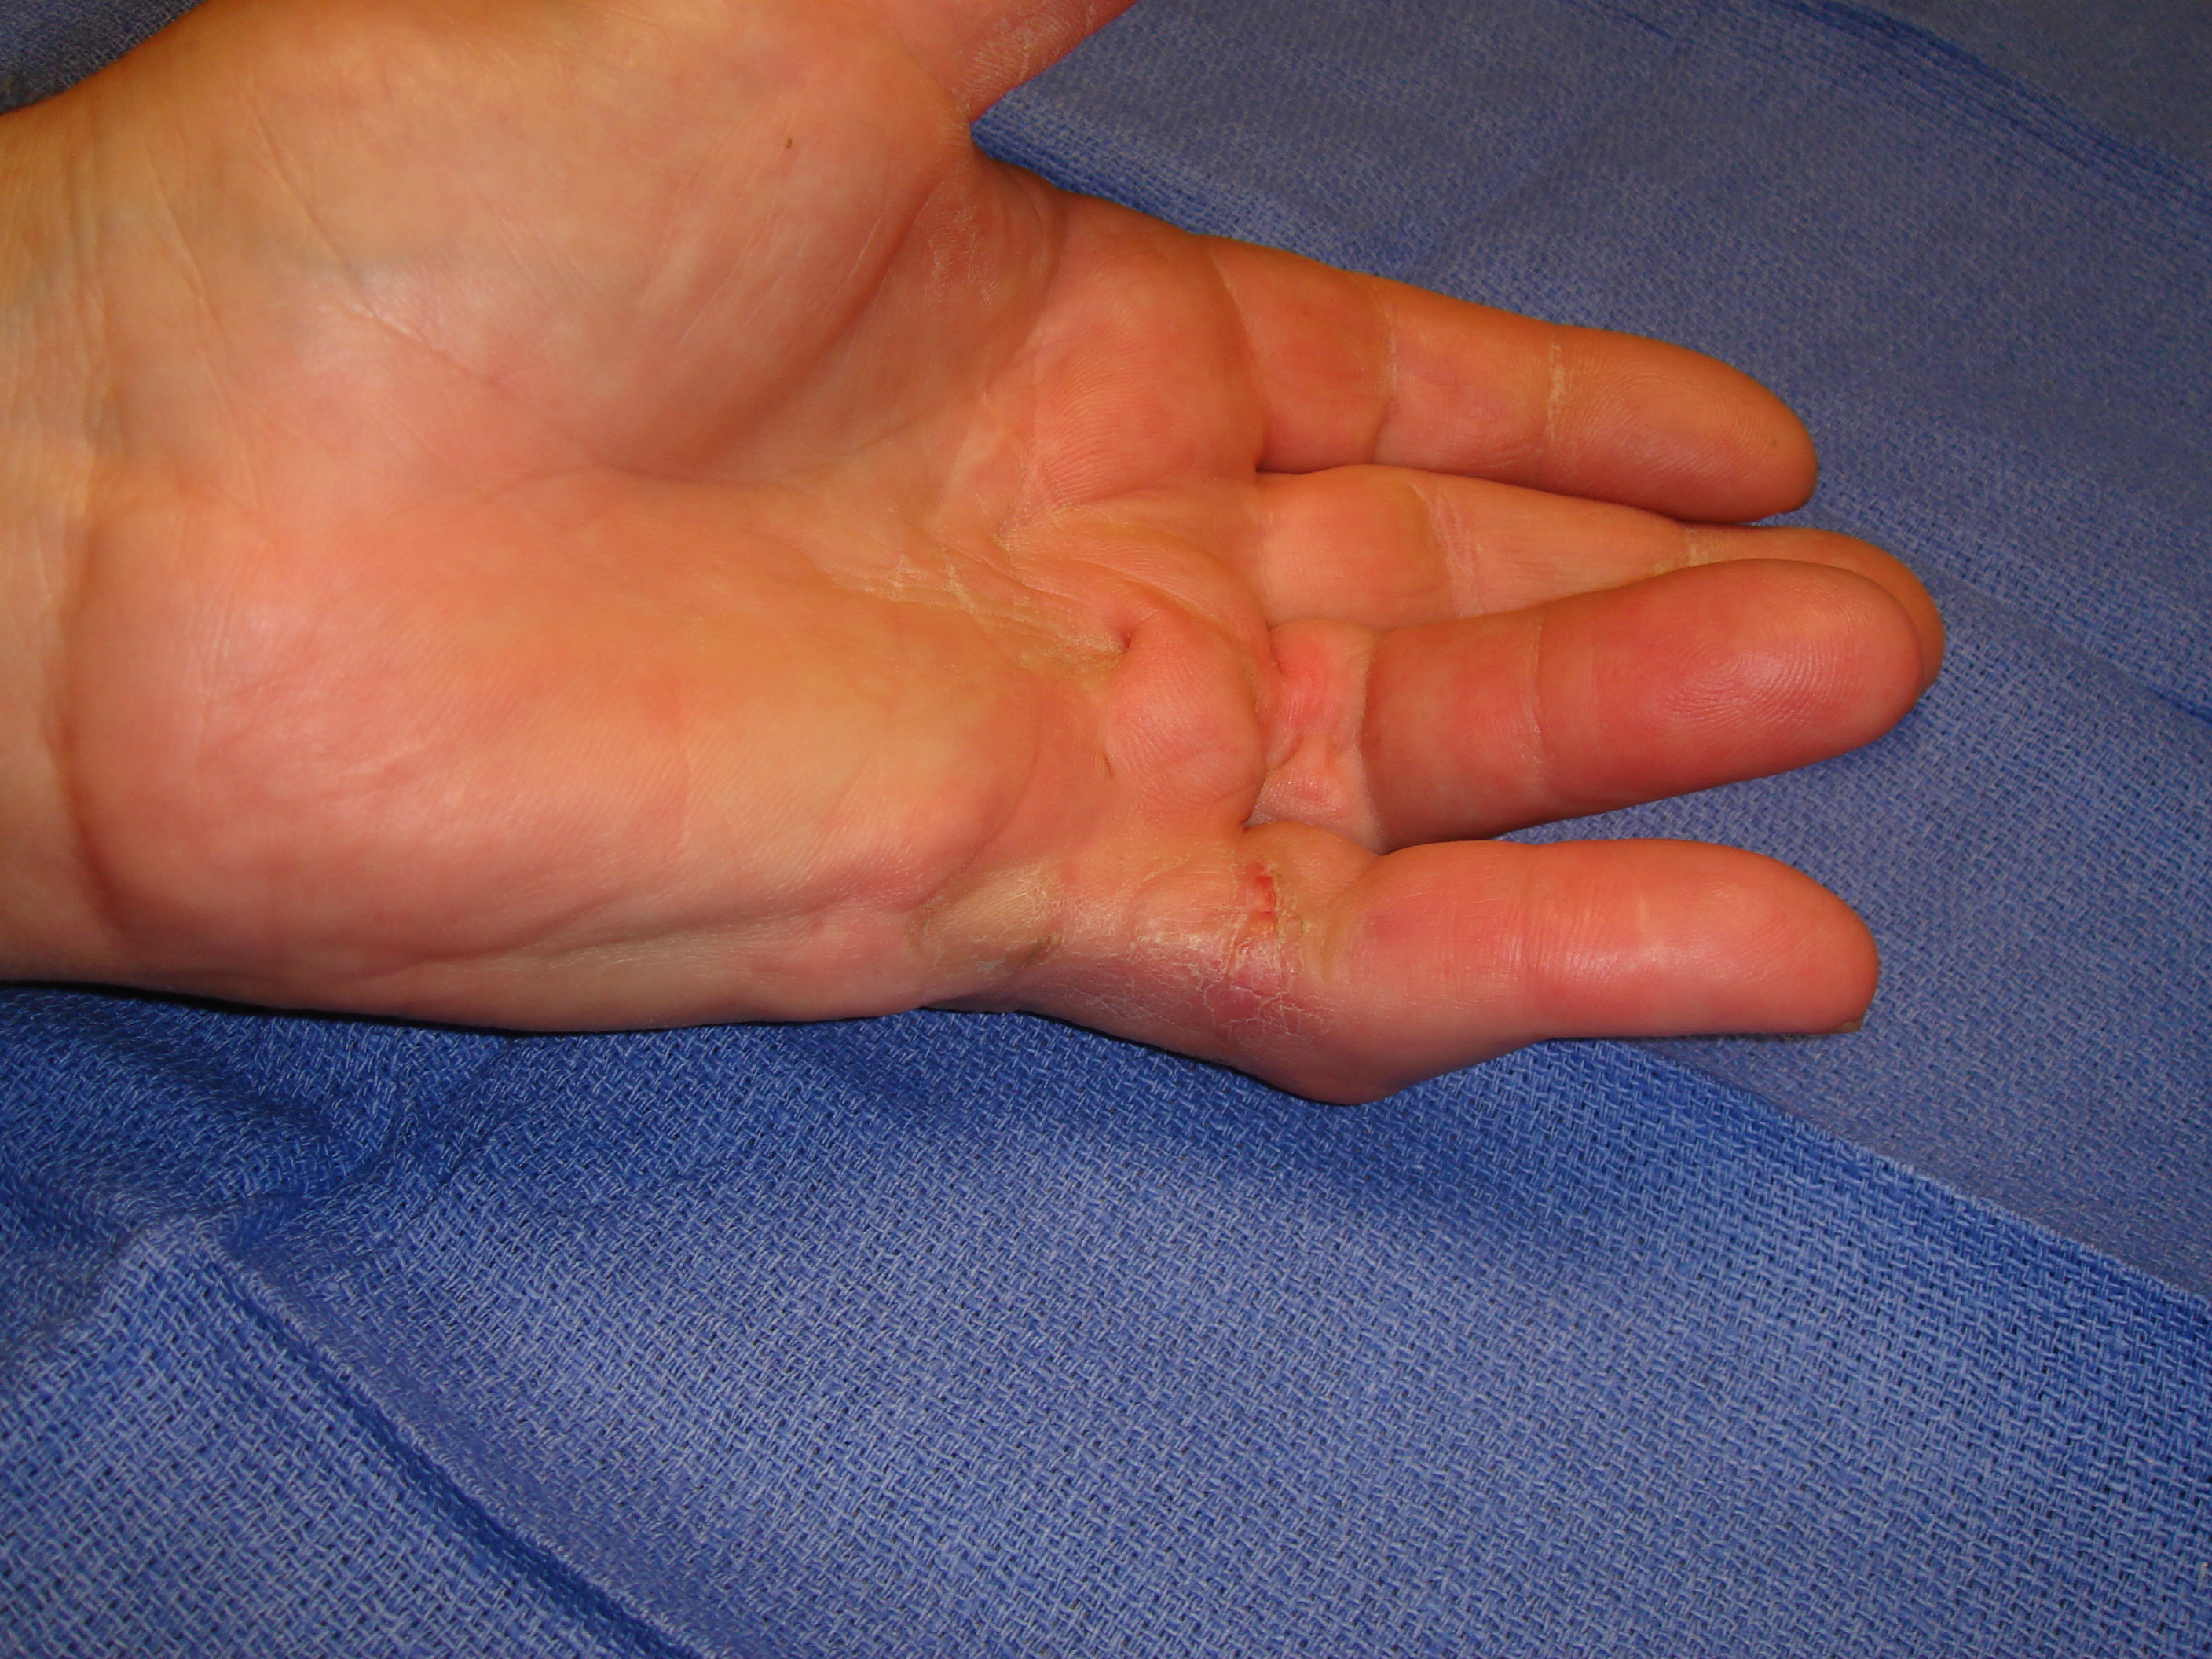 Figure 6h: Two months post-manipulation, the skin tear is healed. He has useful but incomplete MP and PIP motion after enzyme correction of the contractures. Limited little finger distal interphalangeal (DIP) joint flexion from osteoarthritis is evident with active grip.